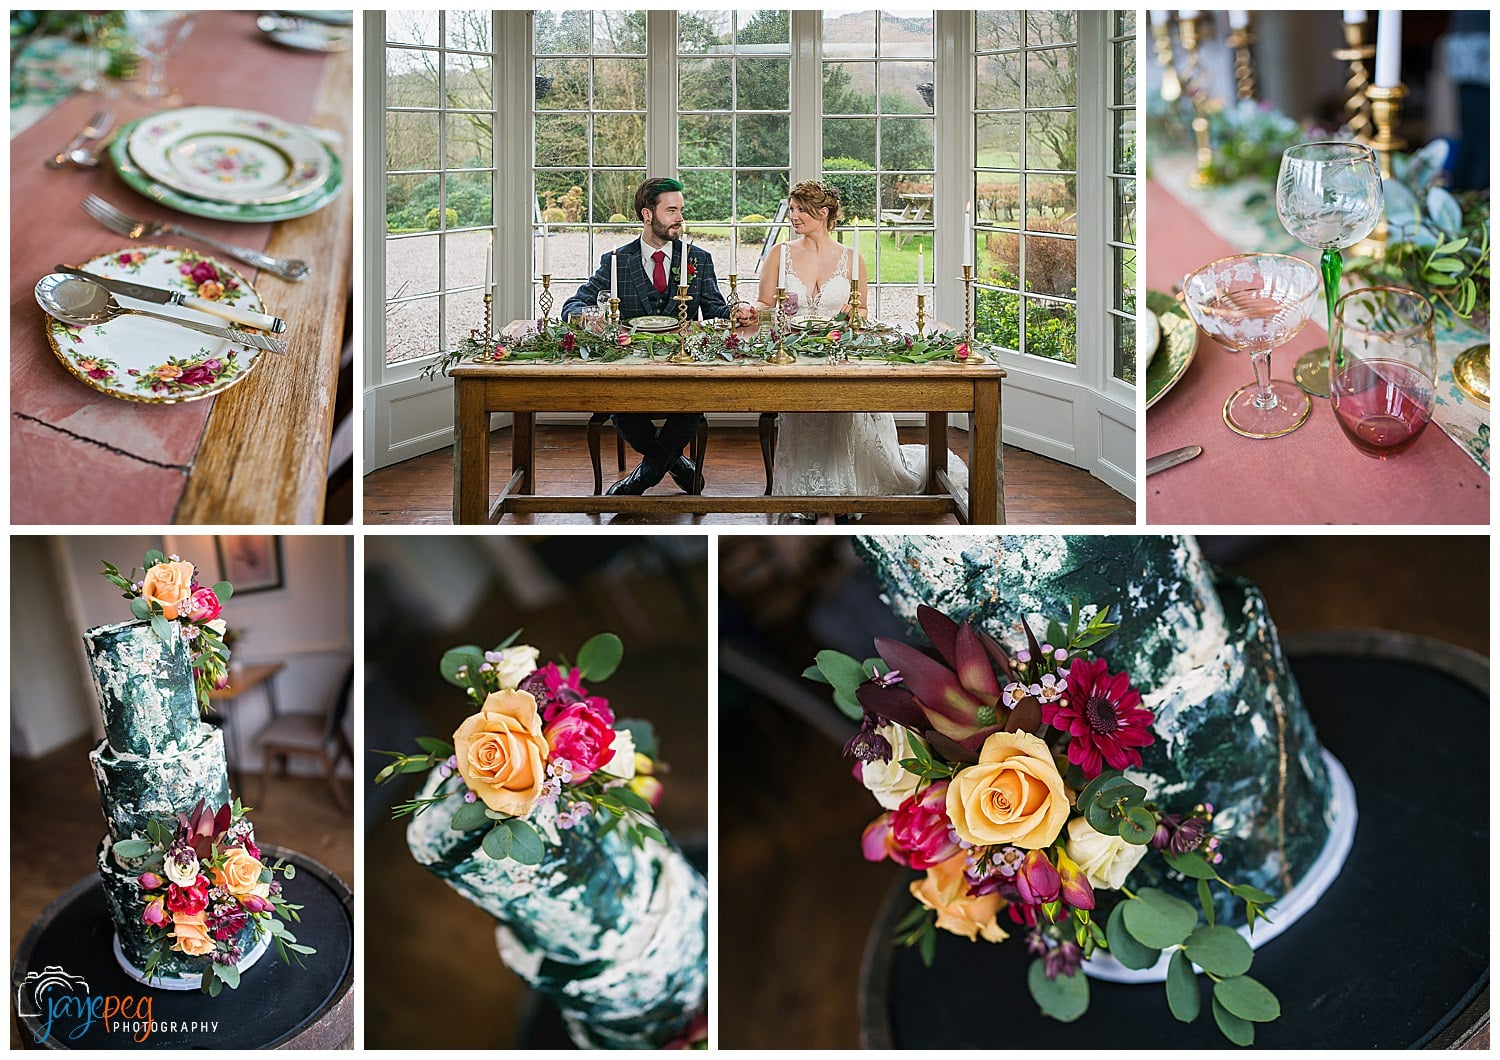 a bride and groom with their vintage tableware and wedding cake